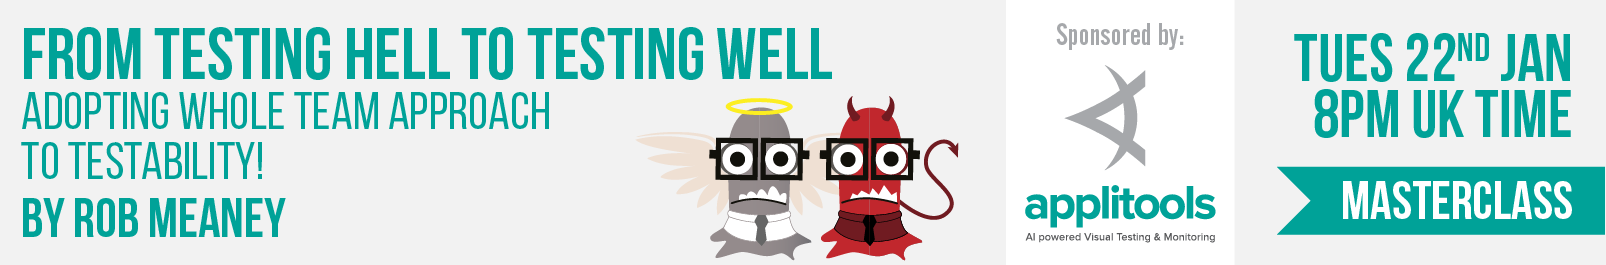 9 rob meany masterclass   testing hell to testing well banner